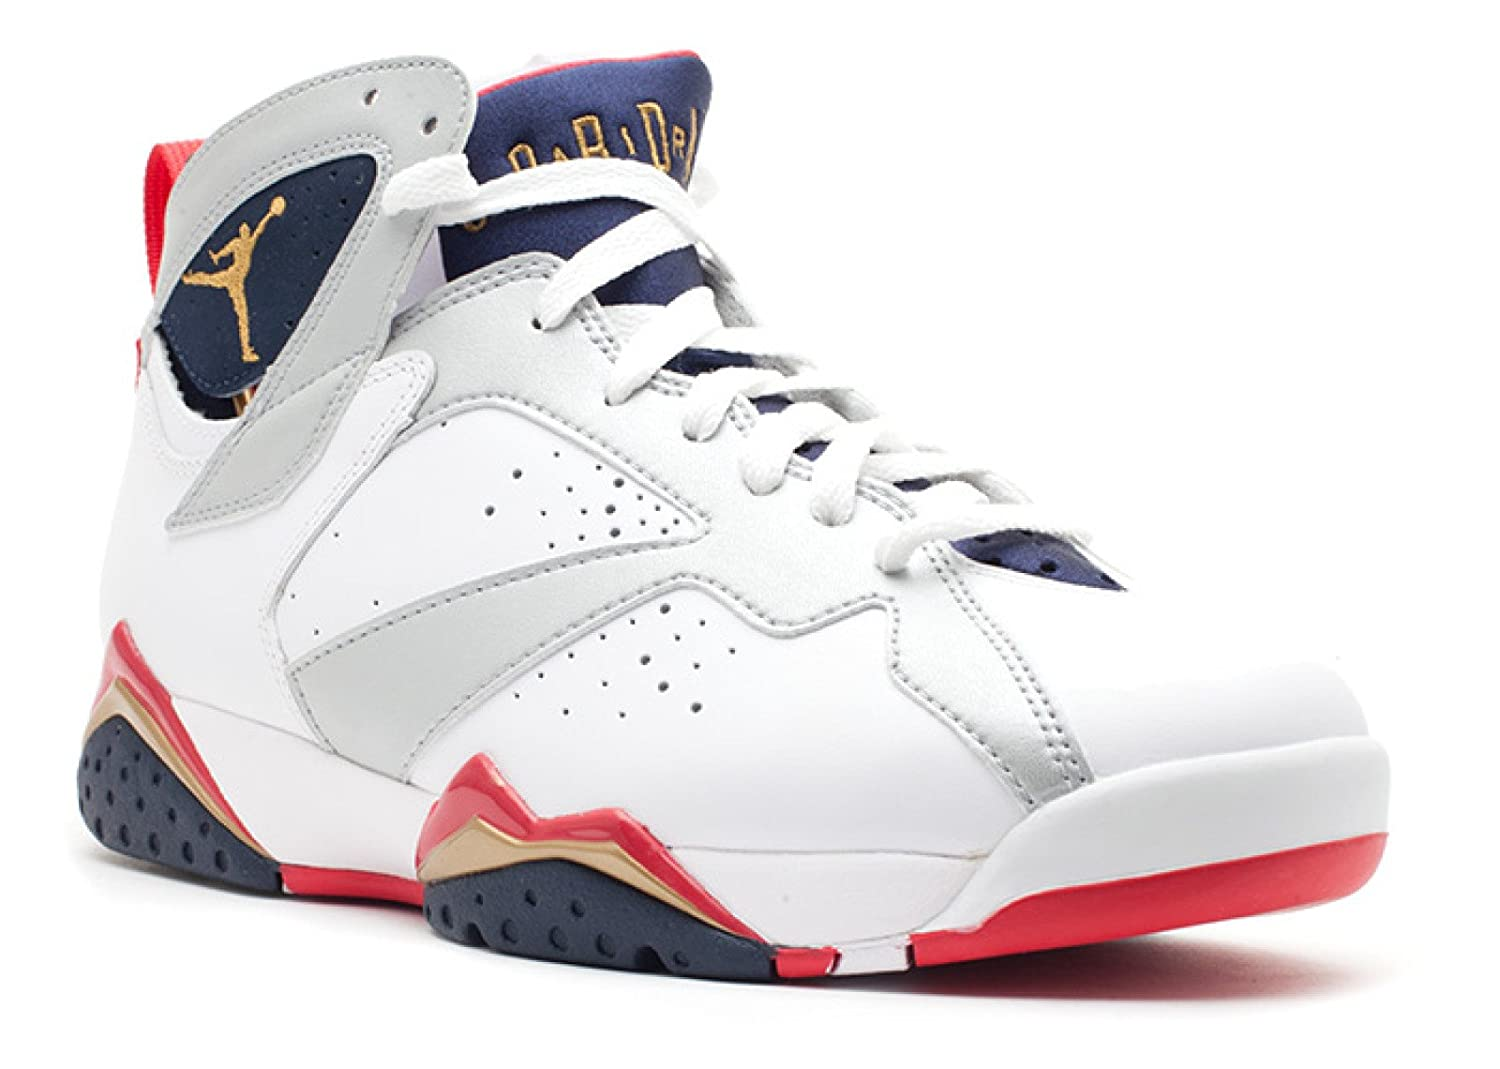 promo code 4bf77 8c4a1 Amazon.com   Jordan Air 7 VII Retro Olympic Men s Basketball Shoes White Metallic  Gold Obsidian Red 304775-135   Basketball